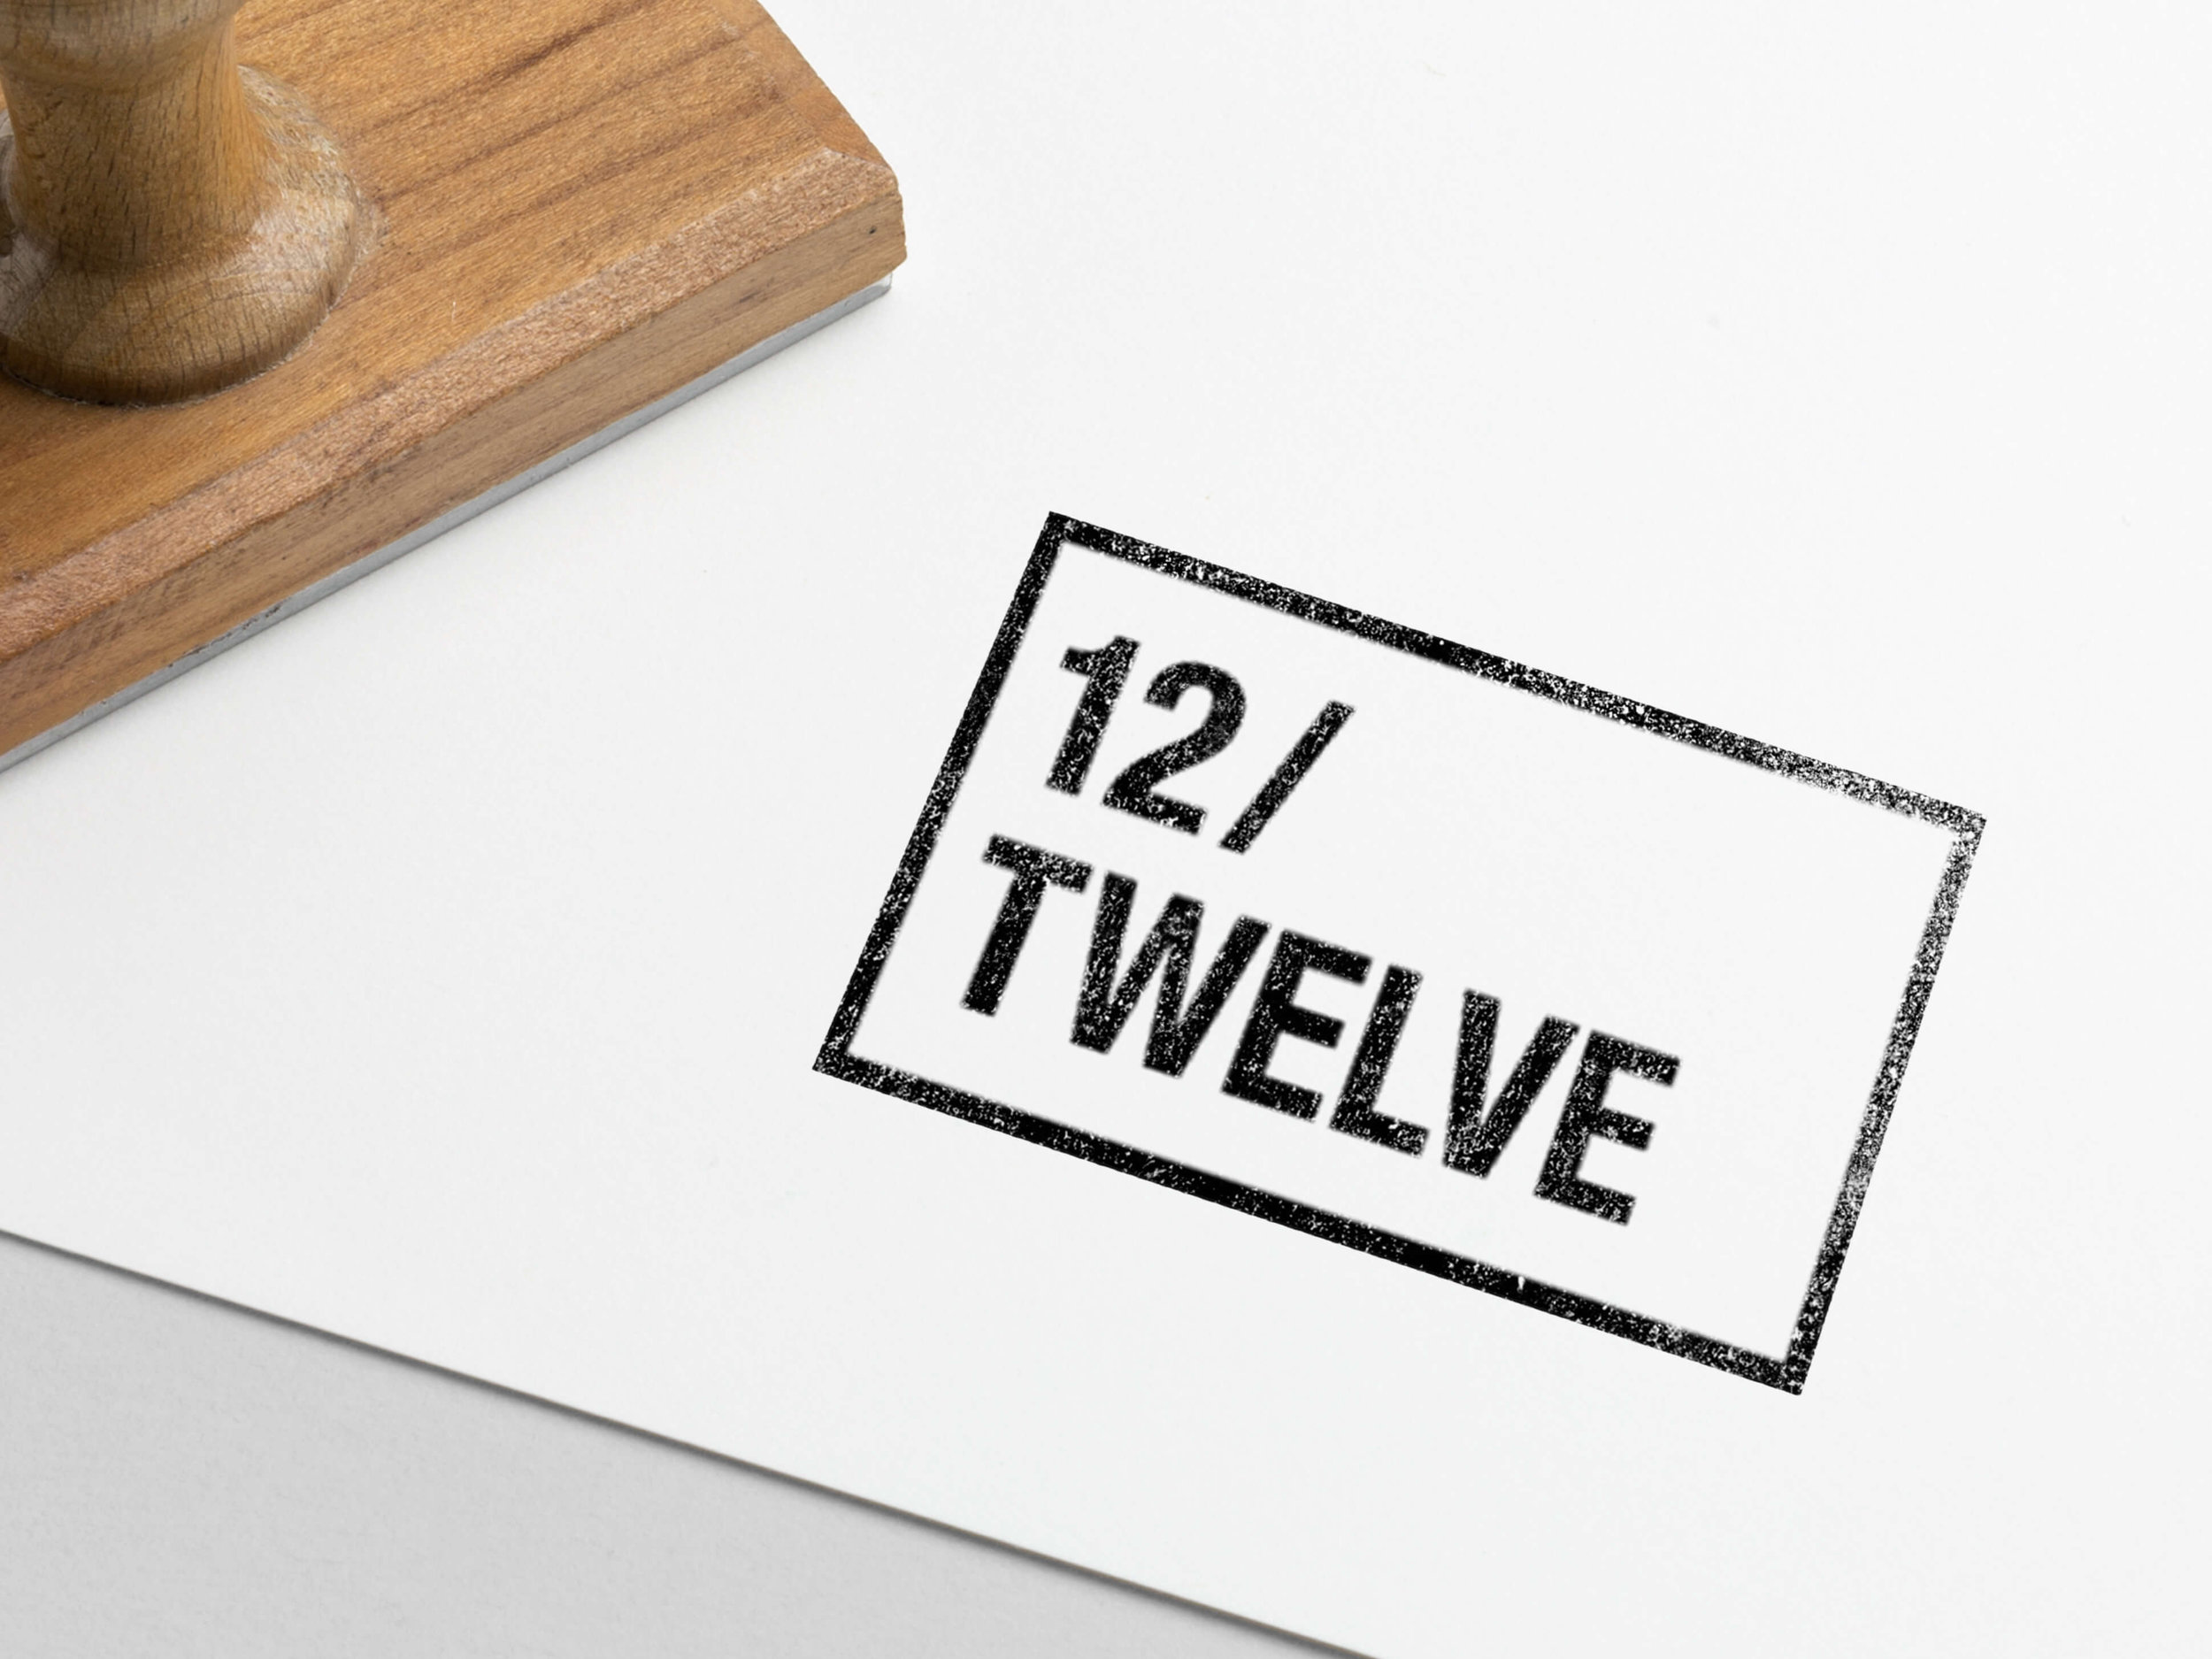 12/Twelve branding for John Khuu's 12/Twelve photography blog. Logo designed with a 4:3 aspect ratio to relate to the standard photography size and can be inverted to a fill